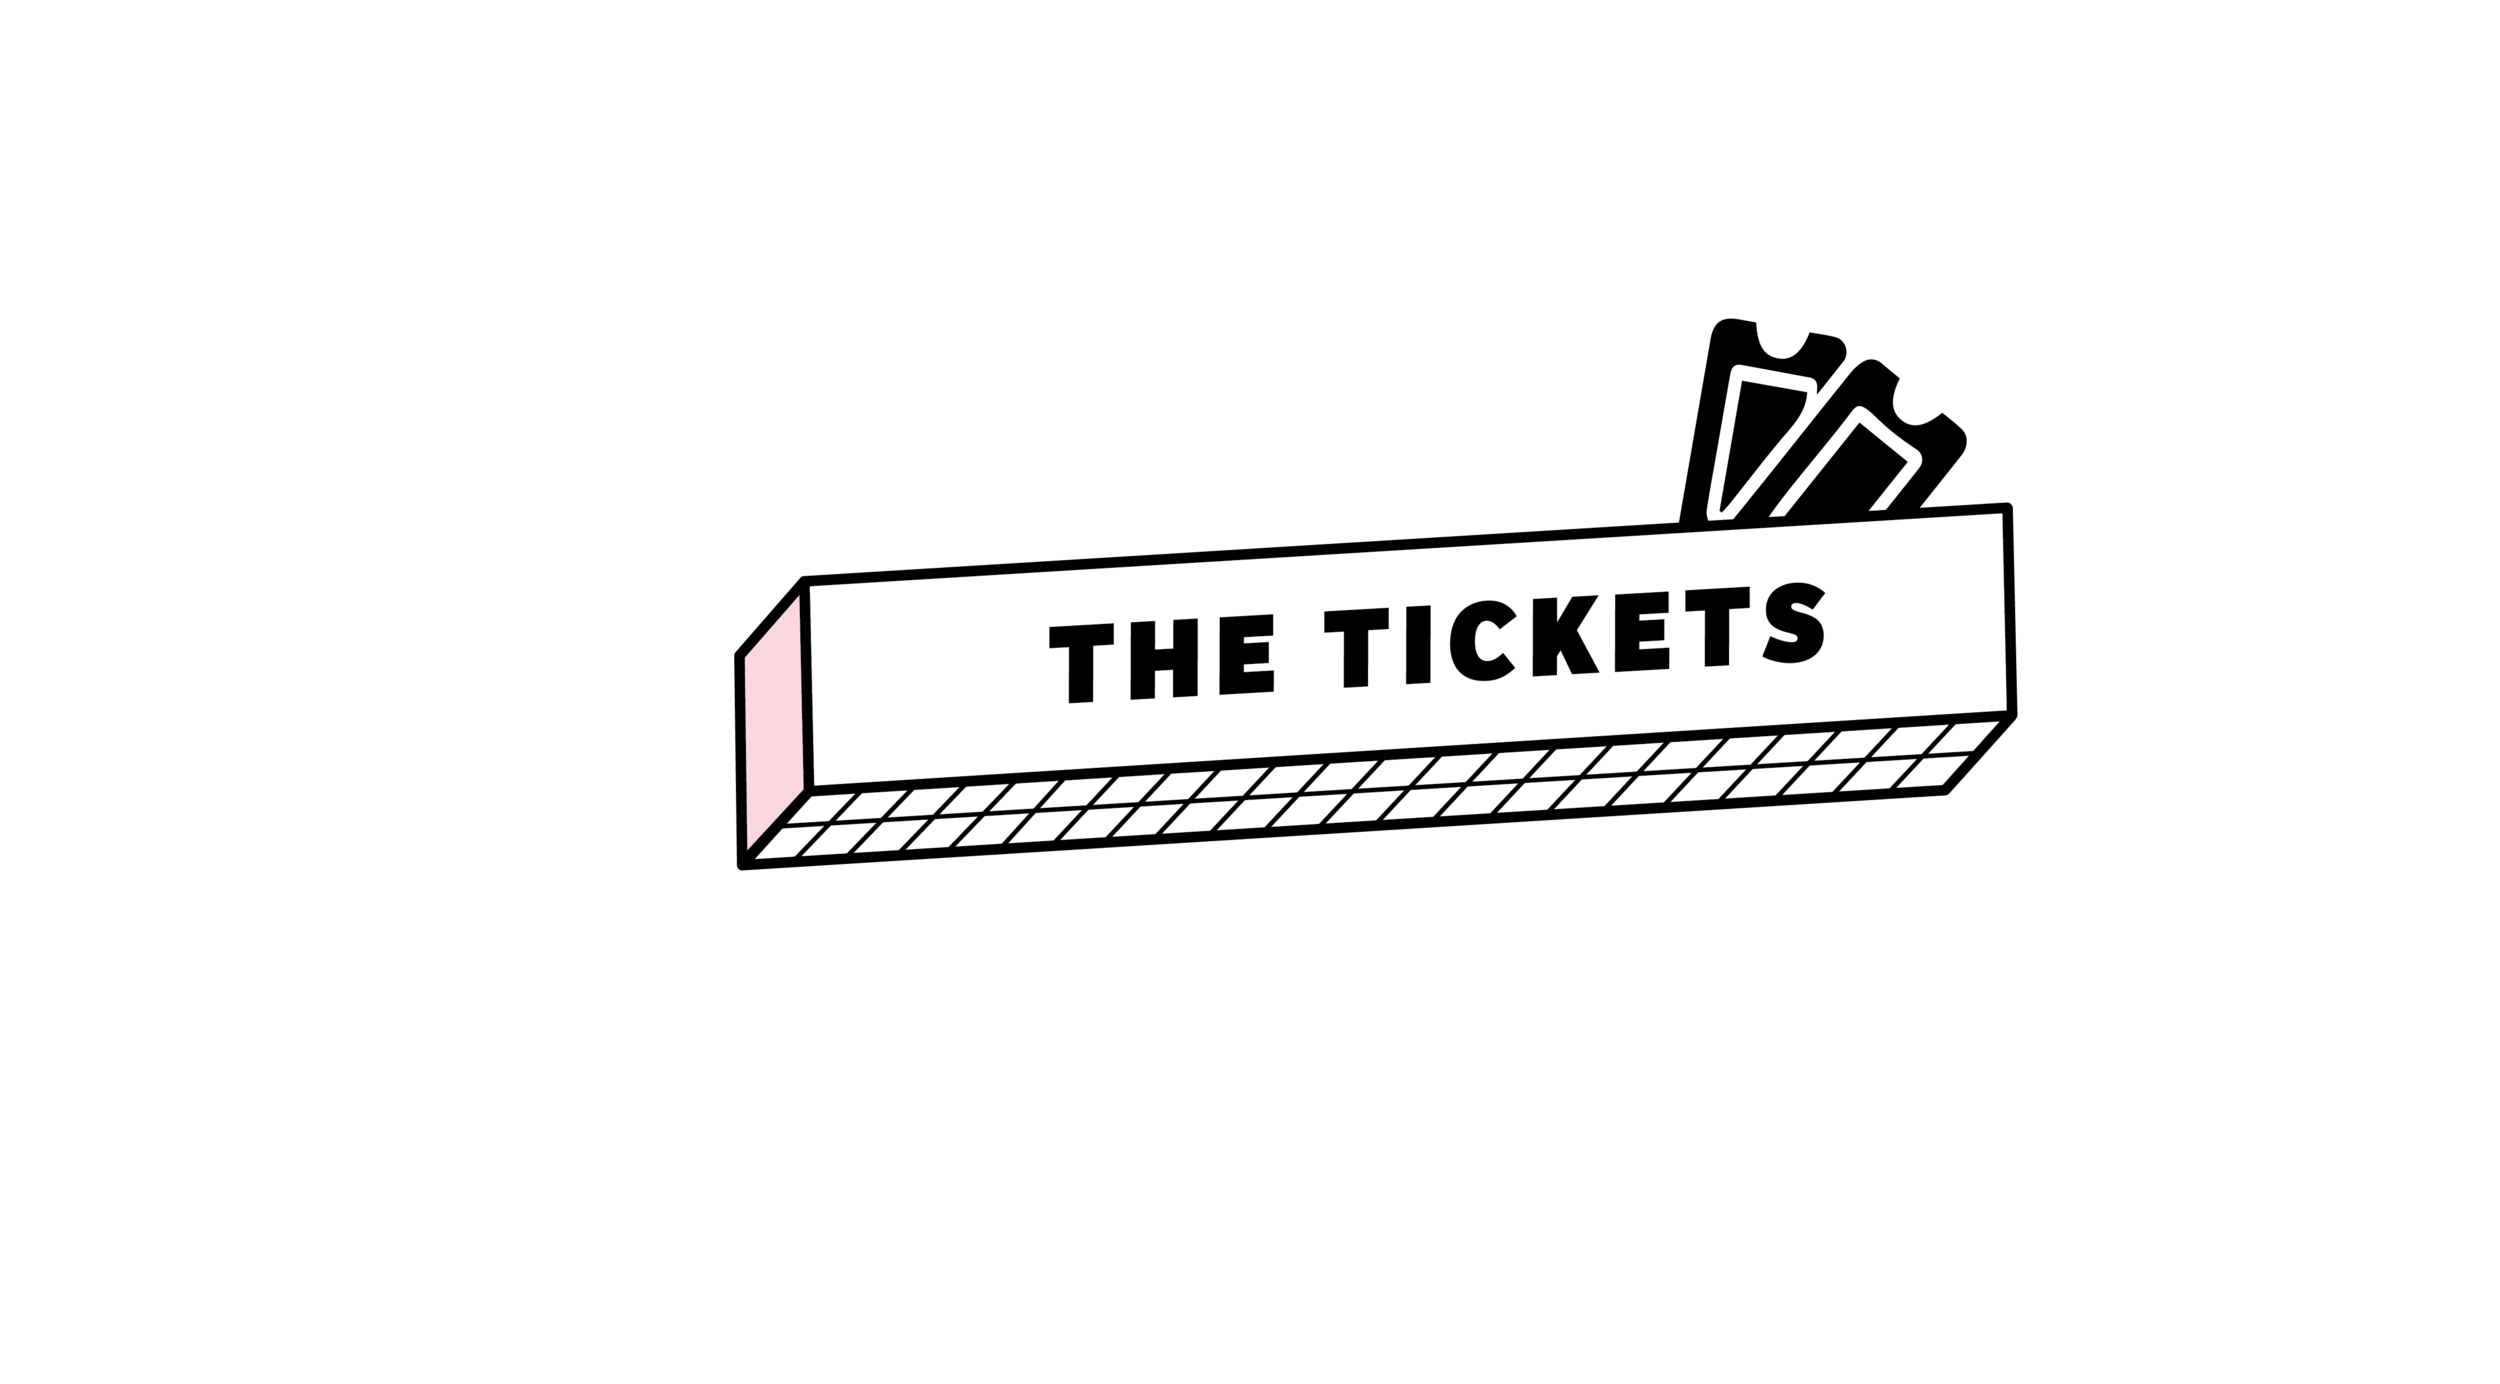 Tickets-05-05.png